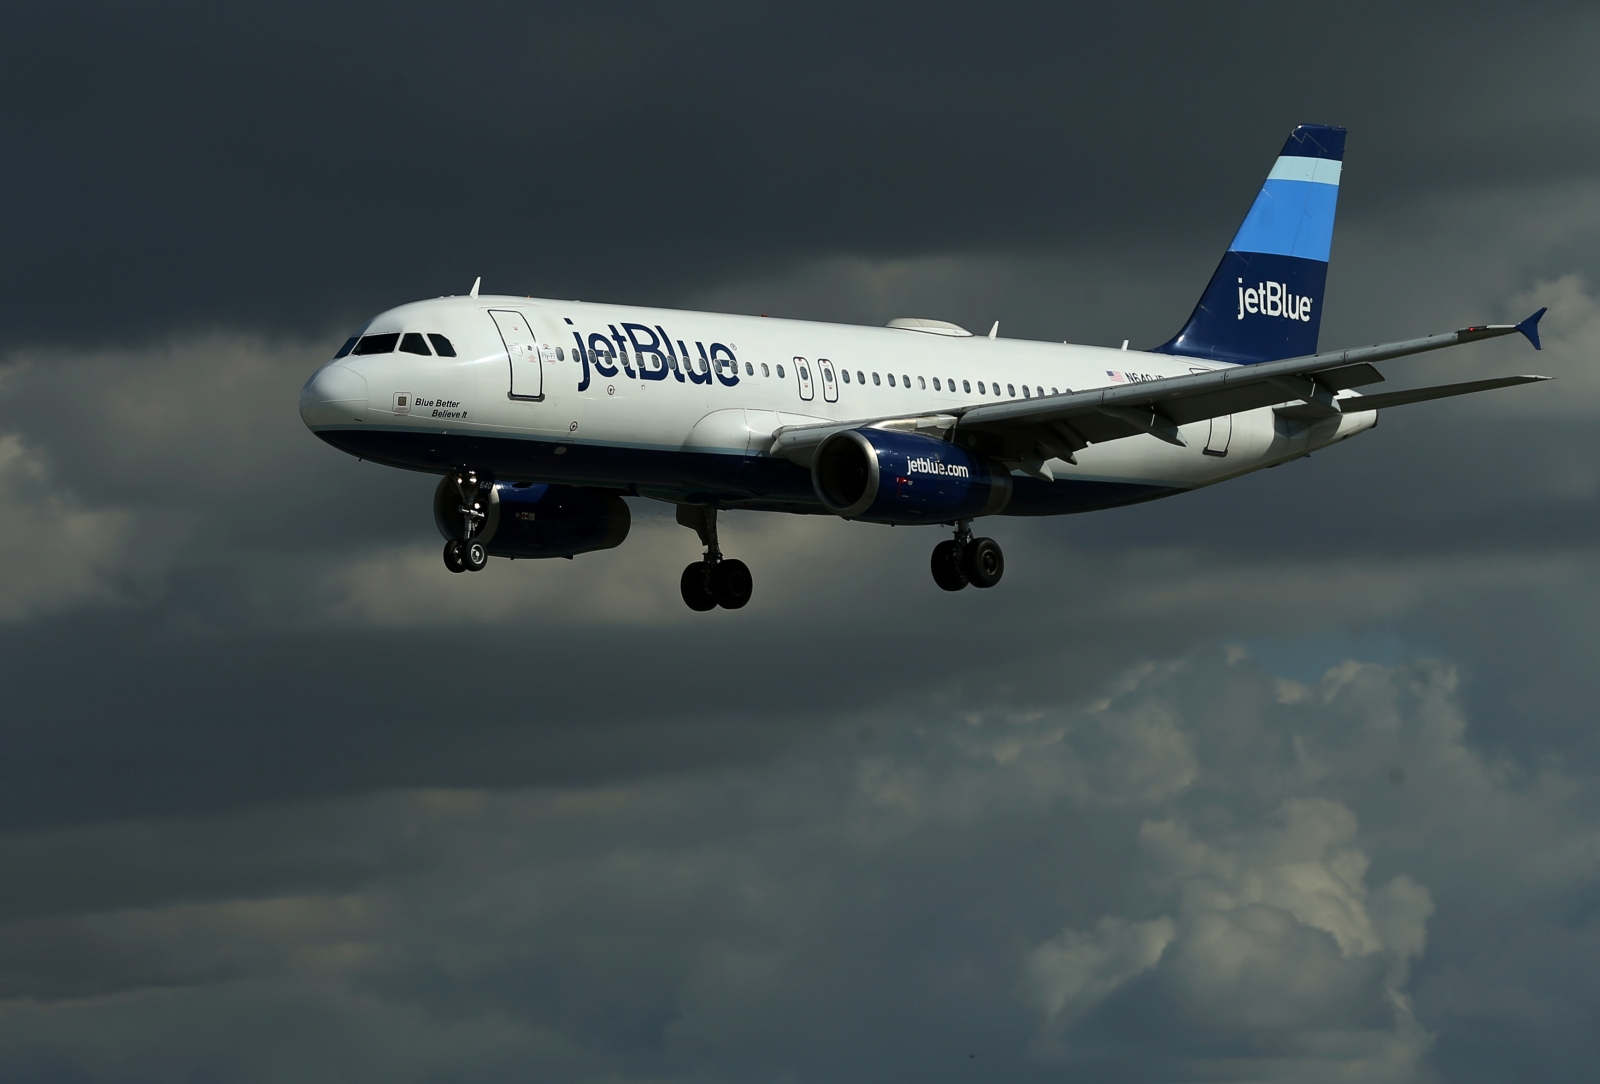 Flight diverted after fire in passenger's electronic device